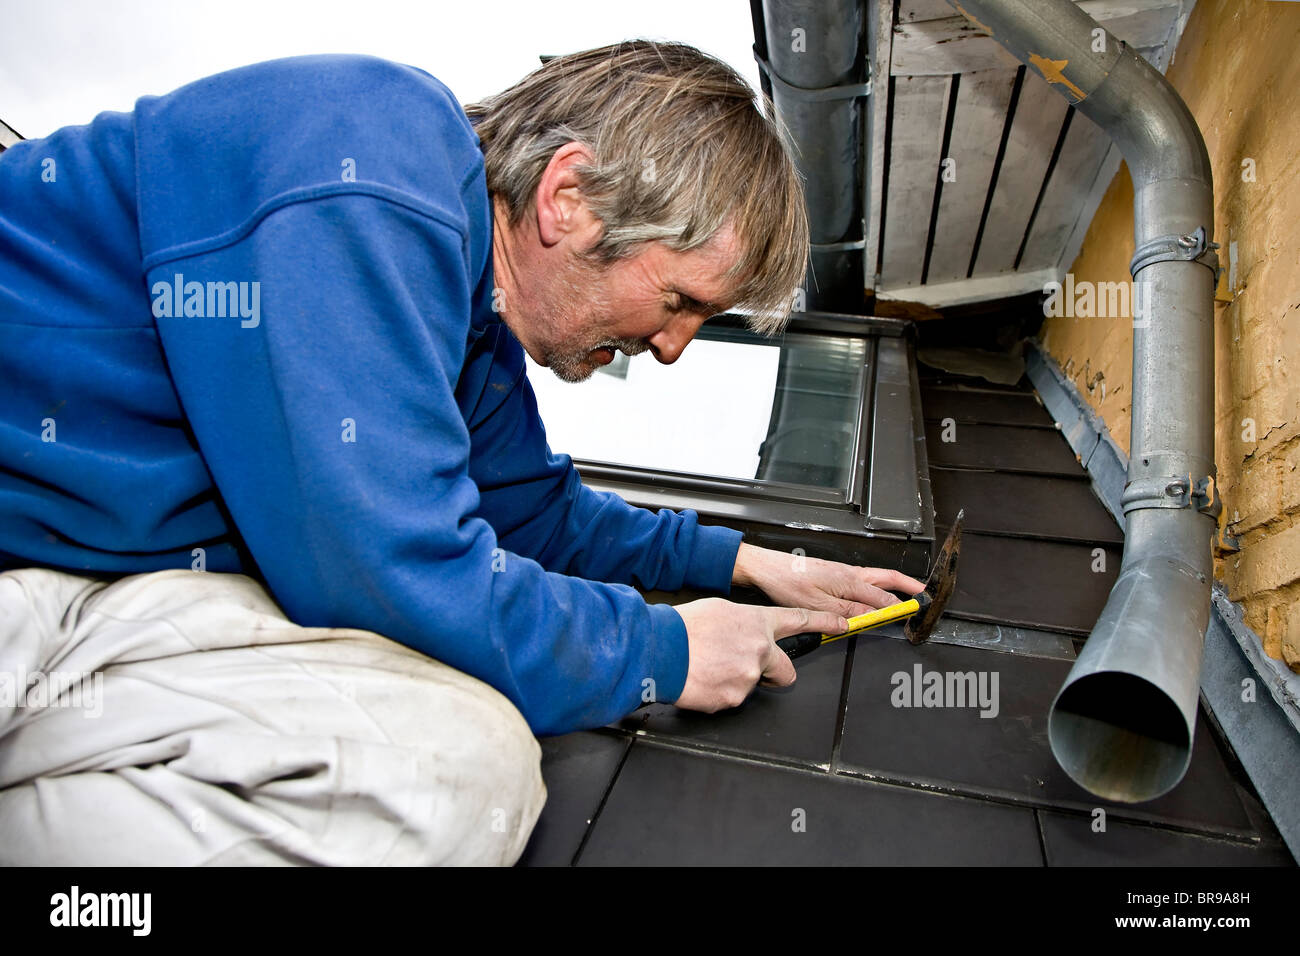 A plumber repairing the leaky roof and drainpipe - Stock Image